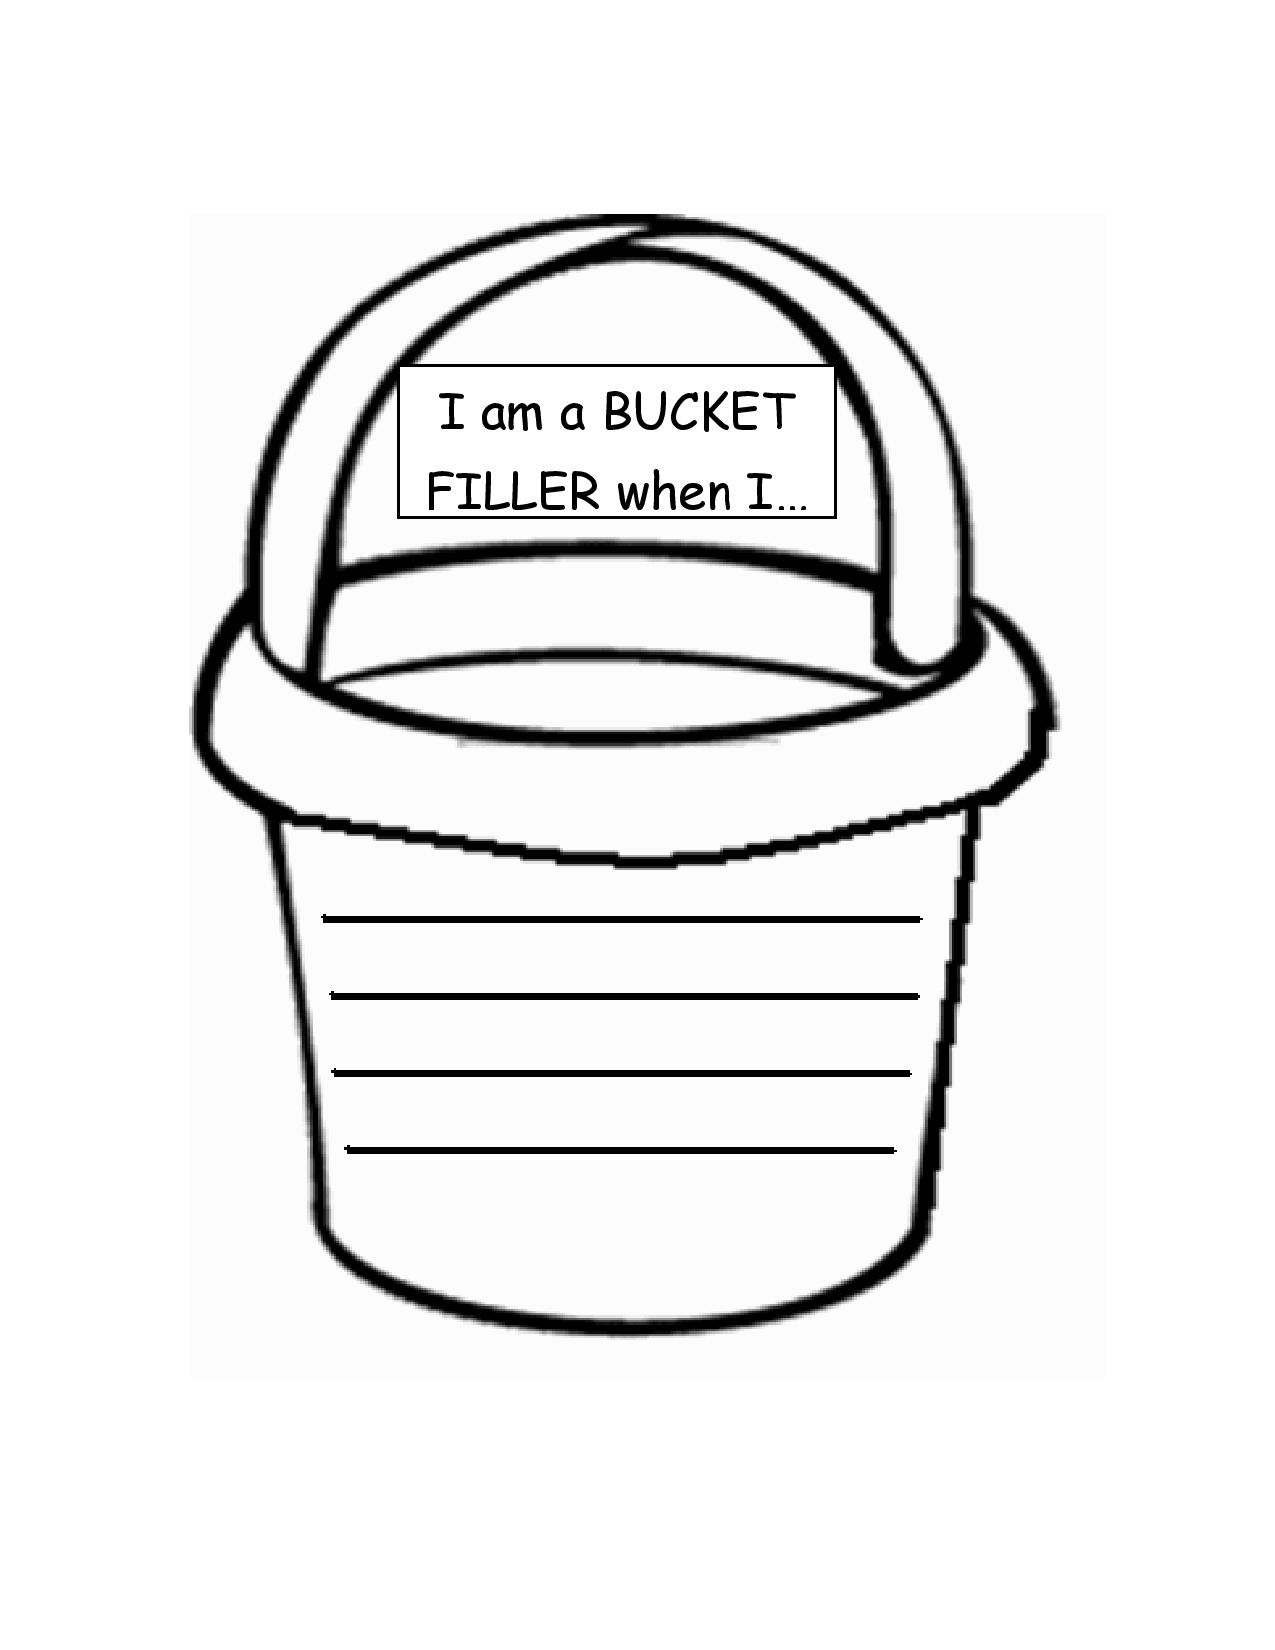 7 Best Images Of Bucket Filler Printables Coloring Page   Bucket .